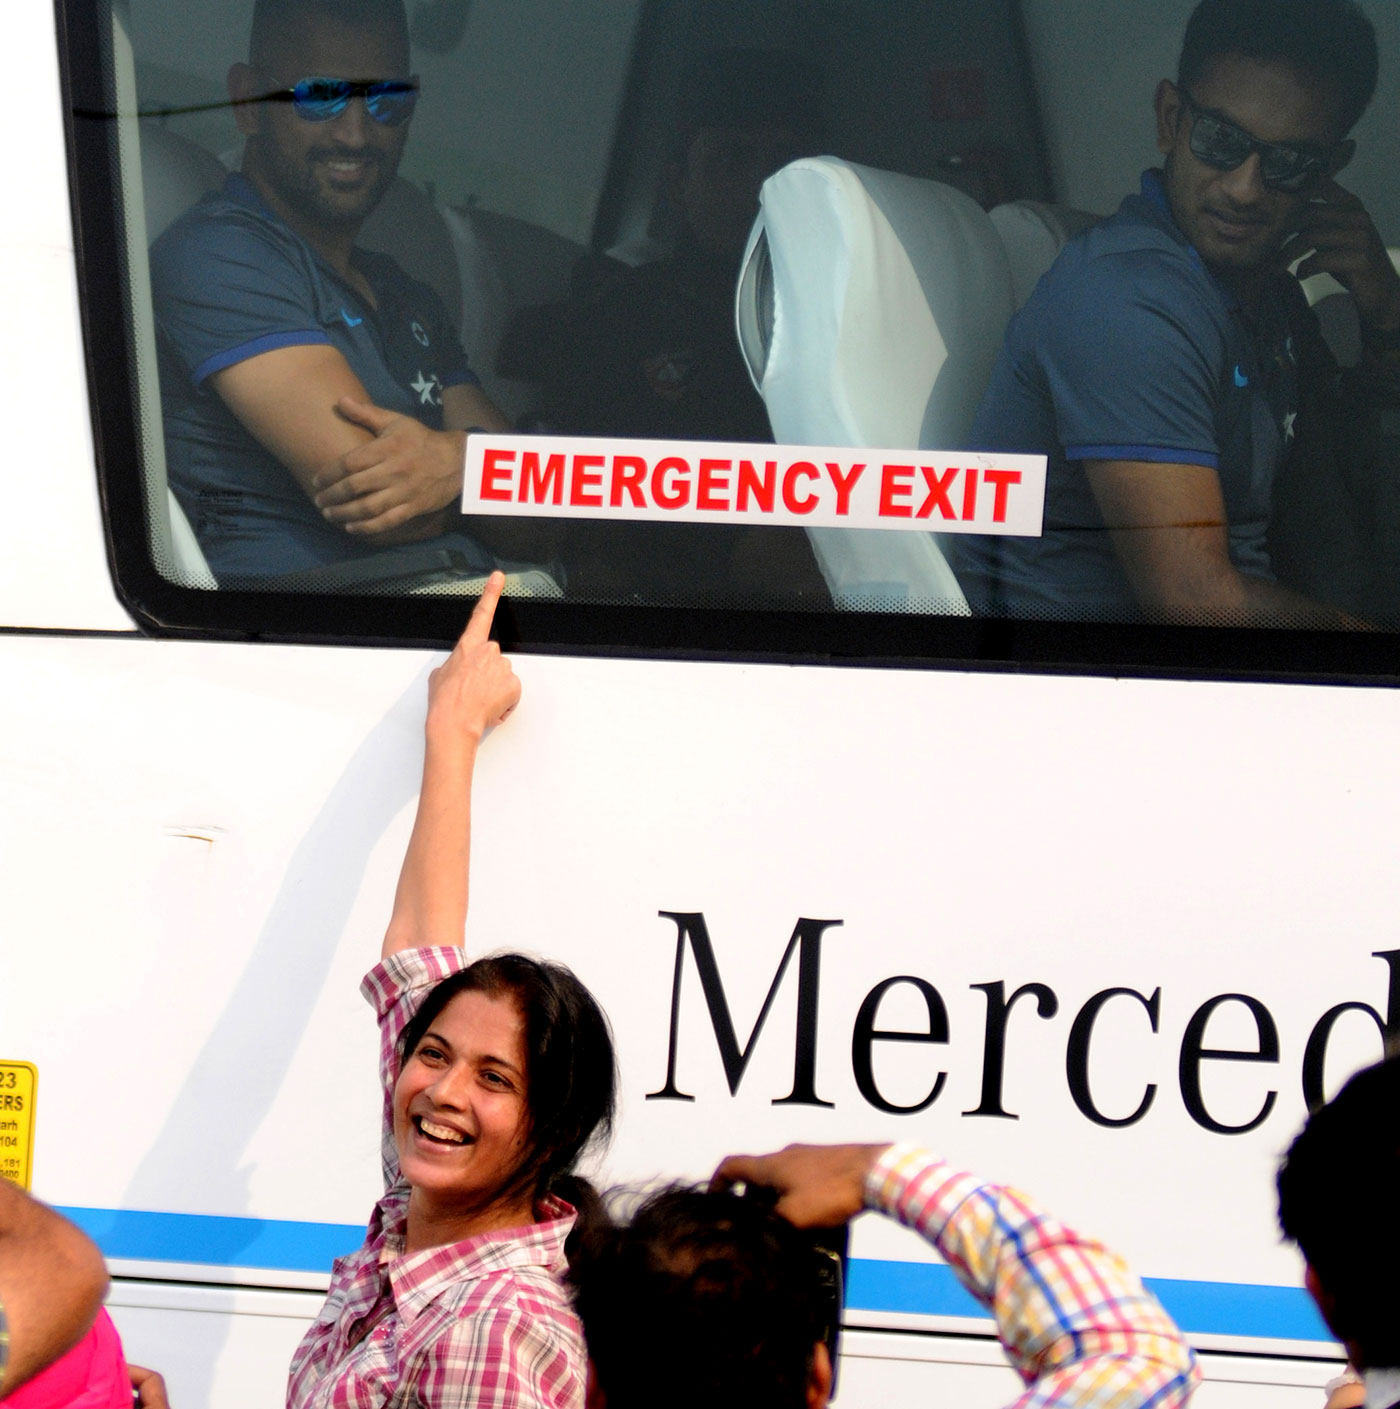 The Indian players are mobbed wherever they go, and have to find refuge in security-heavy team hotels and buses